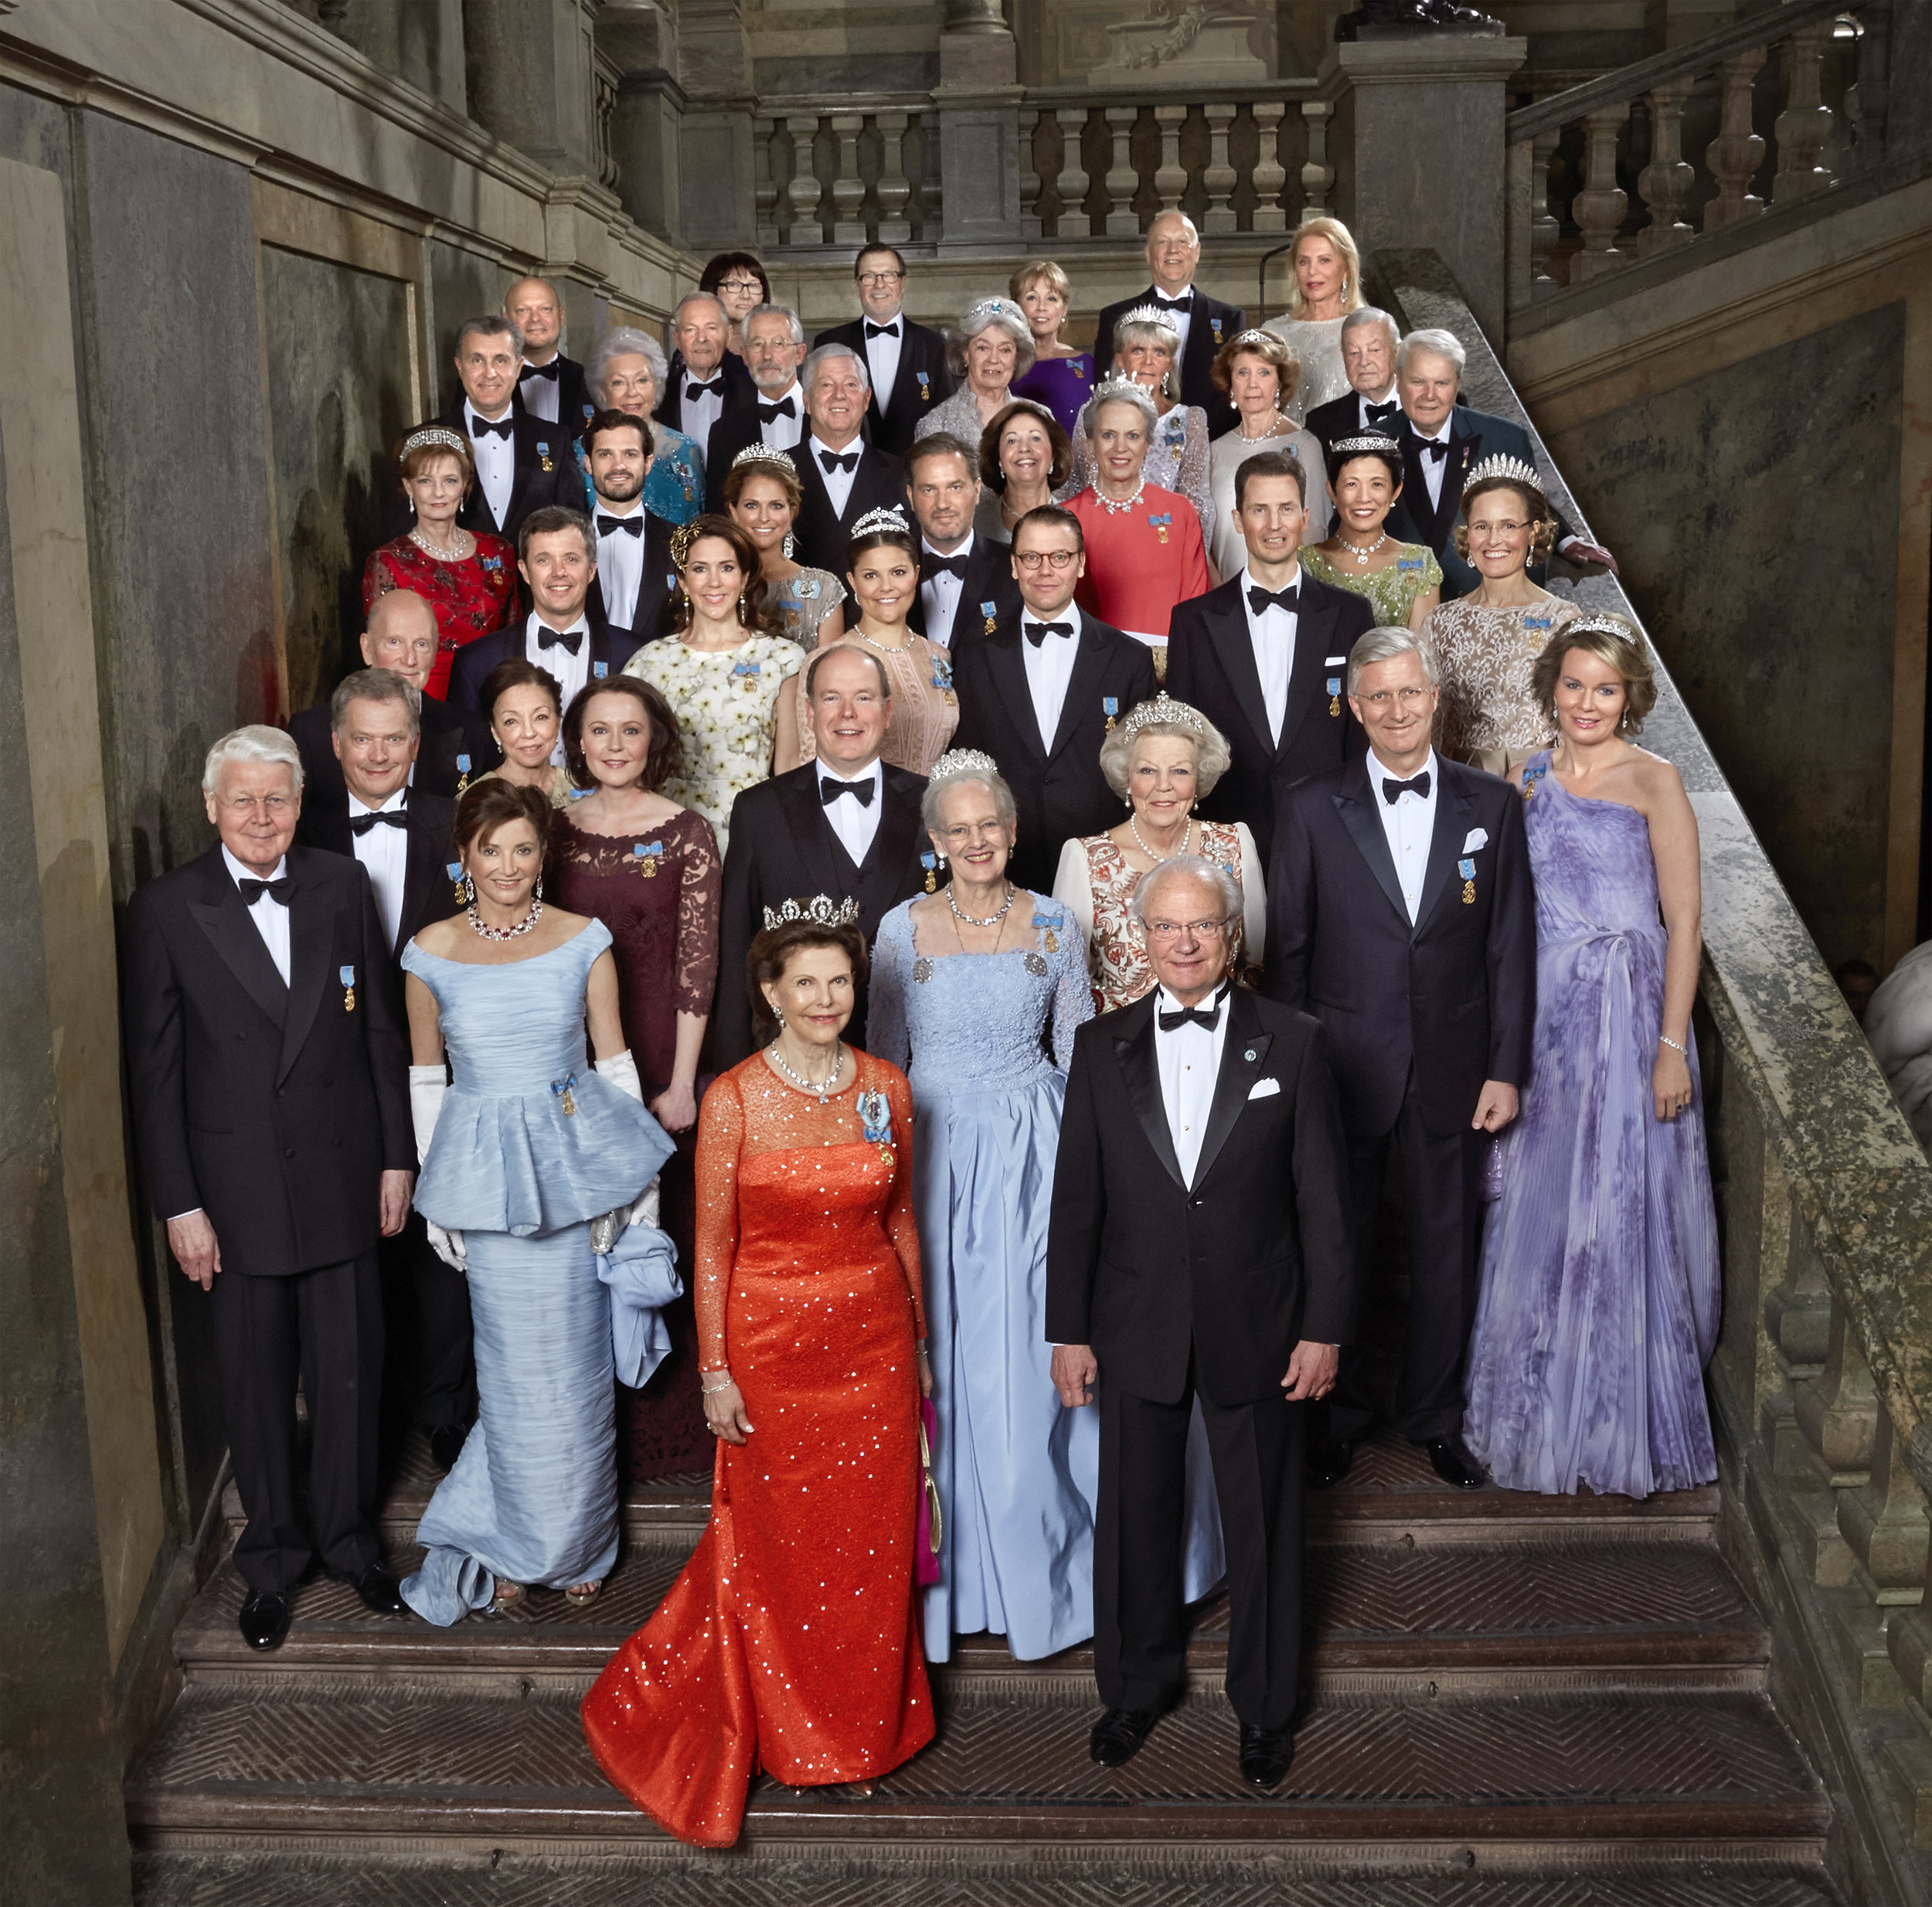 All of the guests at the banquet on April 30, 2016. Photo: Peter Knutson, Royal Court, Sweden